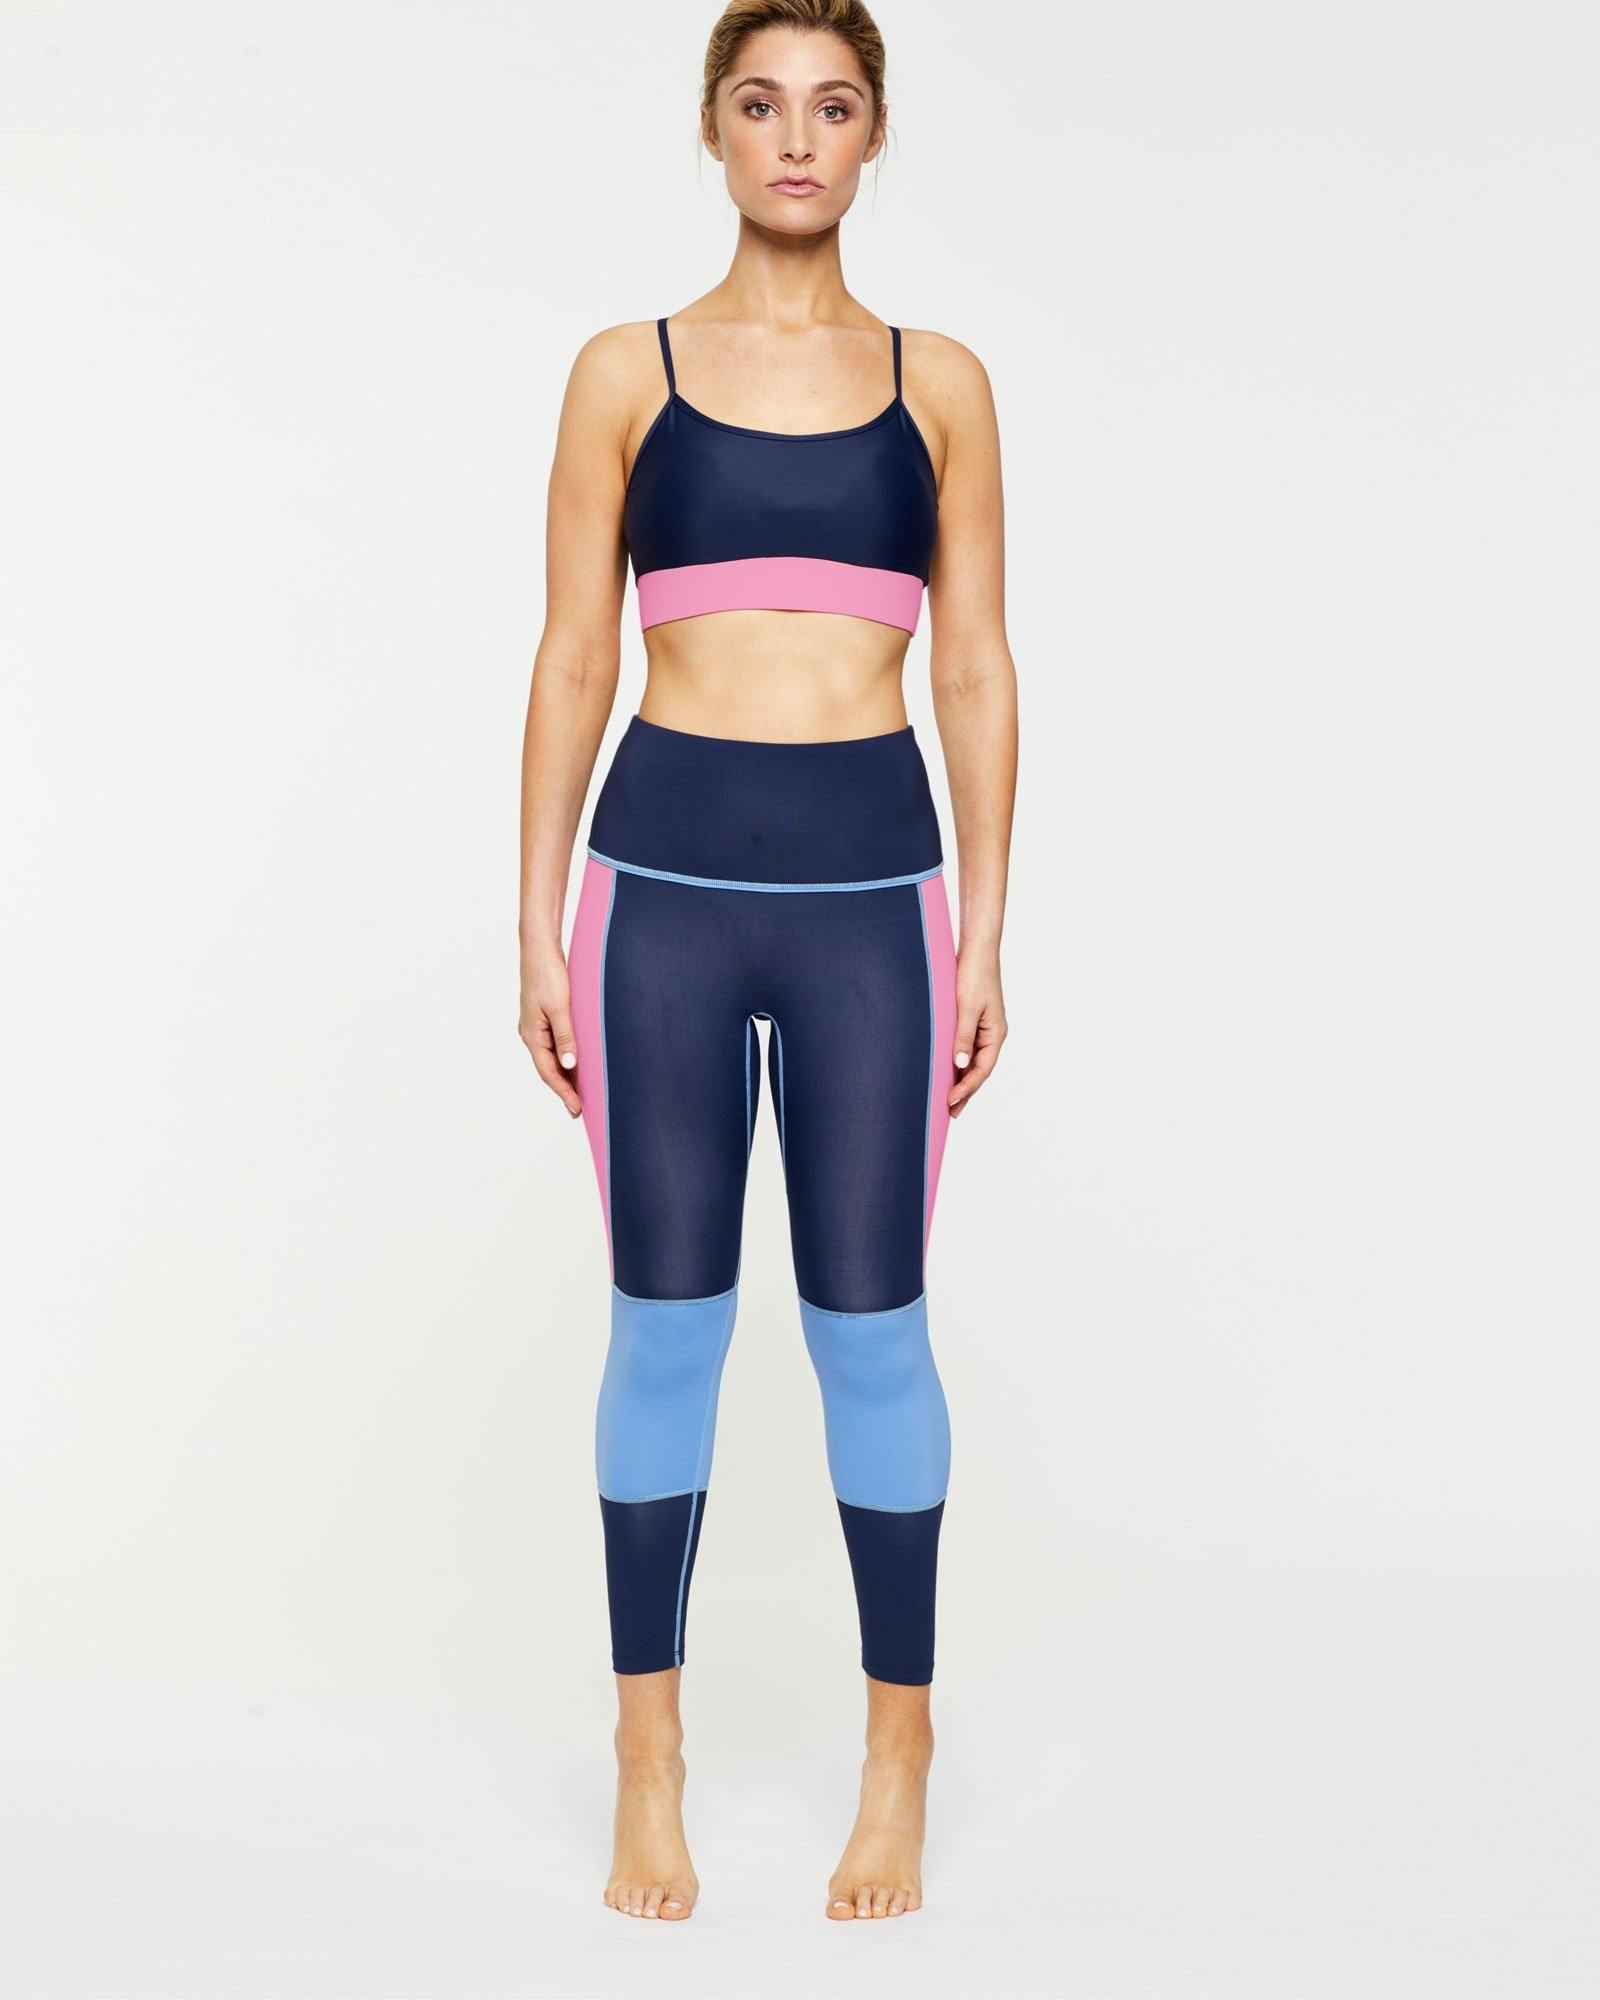 Femininely GRACILIS 7/8 HIGH WAISTED LEGGING Navy Blue WITH CONTRAST PANELS Sky blue and peony pink work with Infraspinatus active bra top, front VIEW, for pilates, barre, yoga, dance, gym-workouts